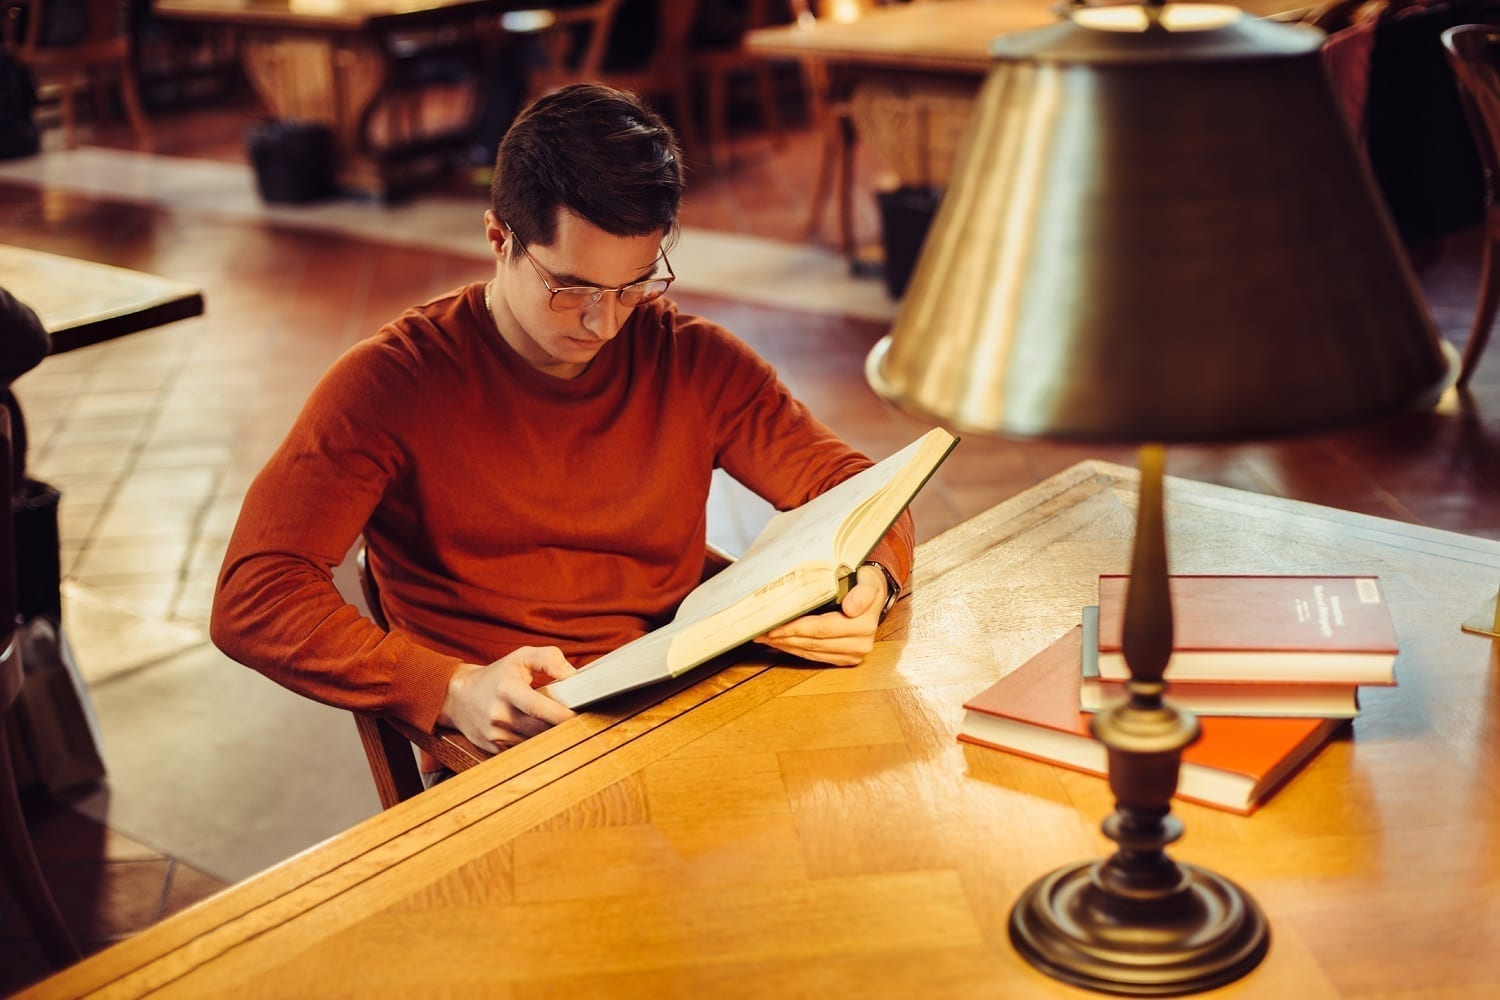 Man reading a reasearch book at a library table: ID 133756176 © Mykyta Starychenko | Dreamstime.com